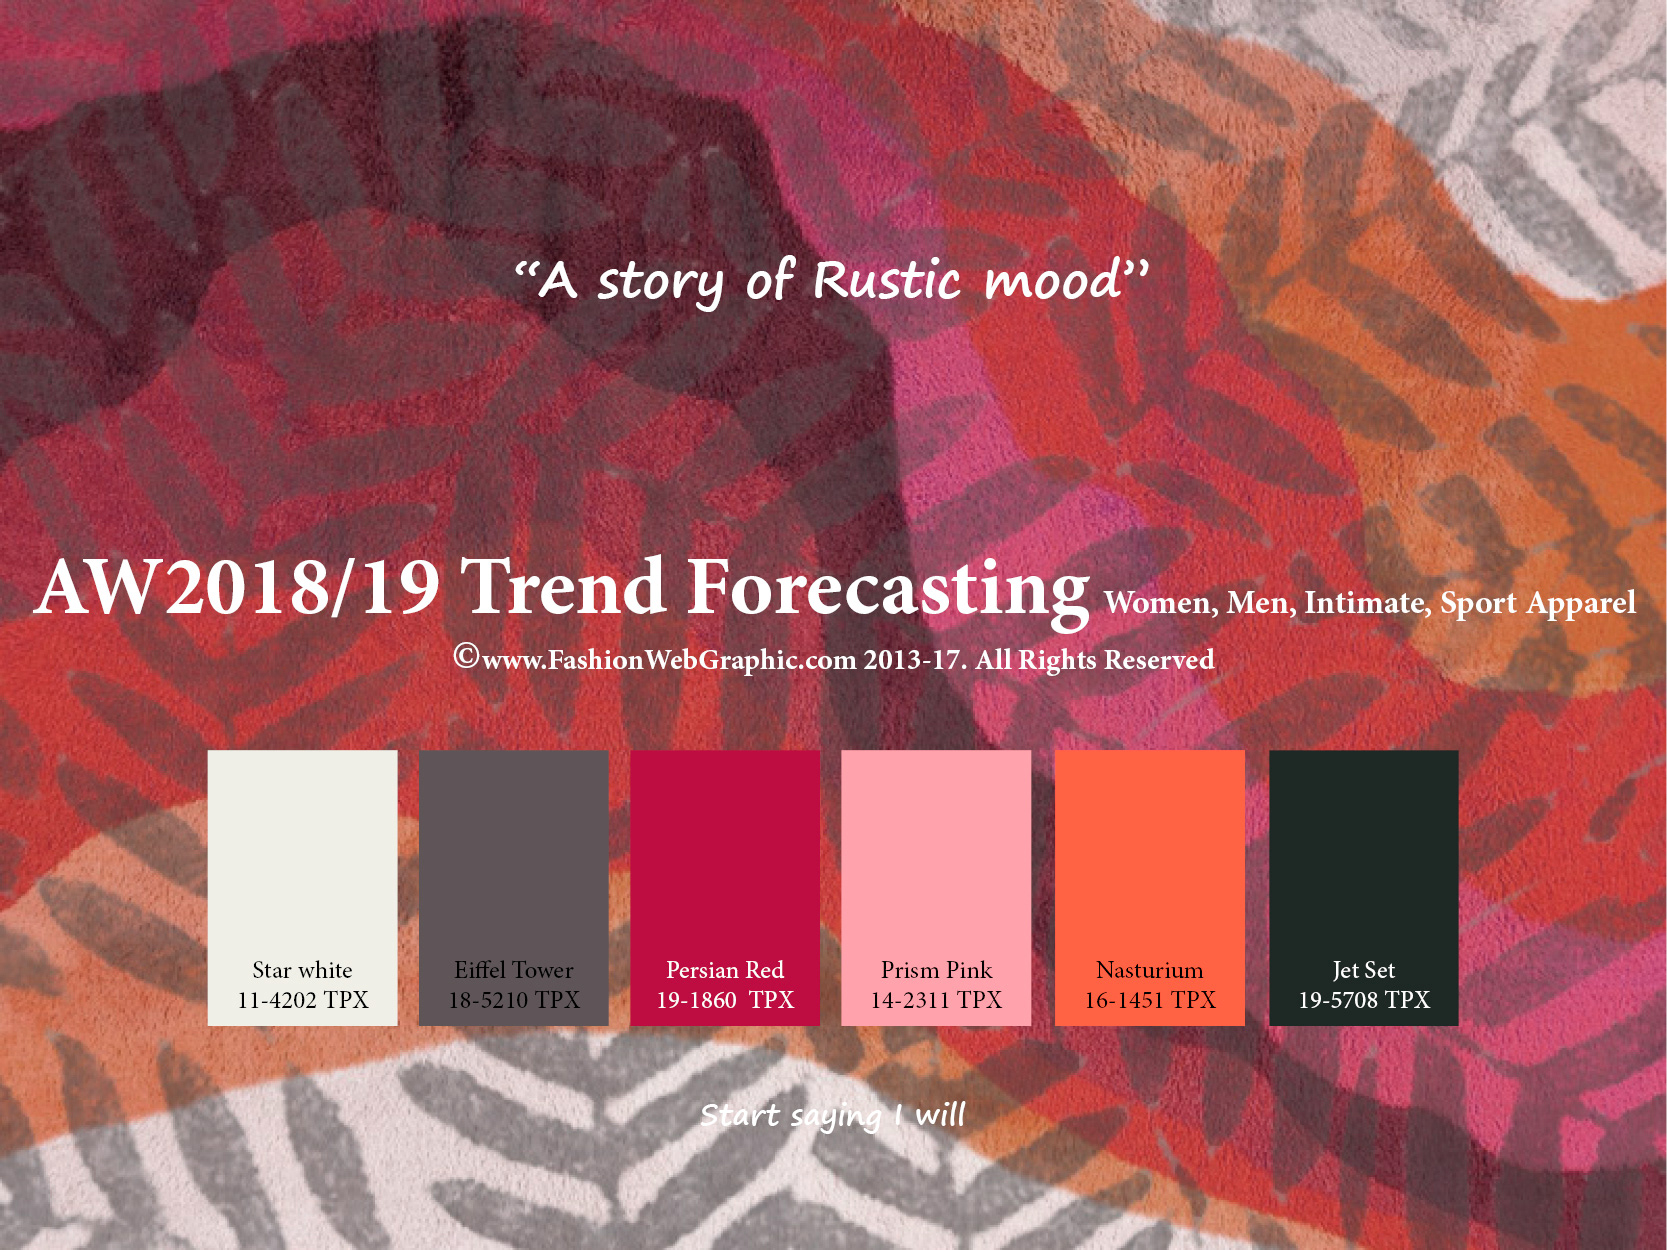 judith ng aw2018 2019 trend forecasting